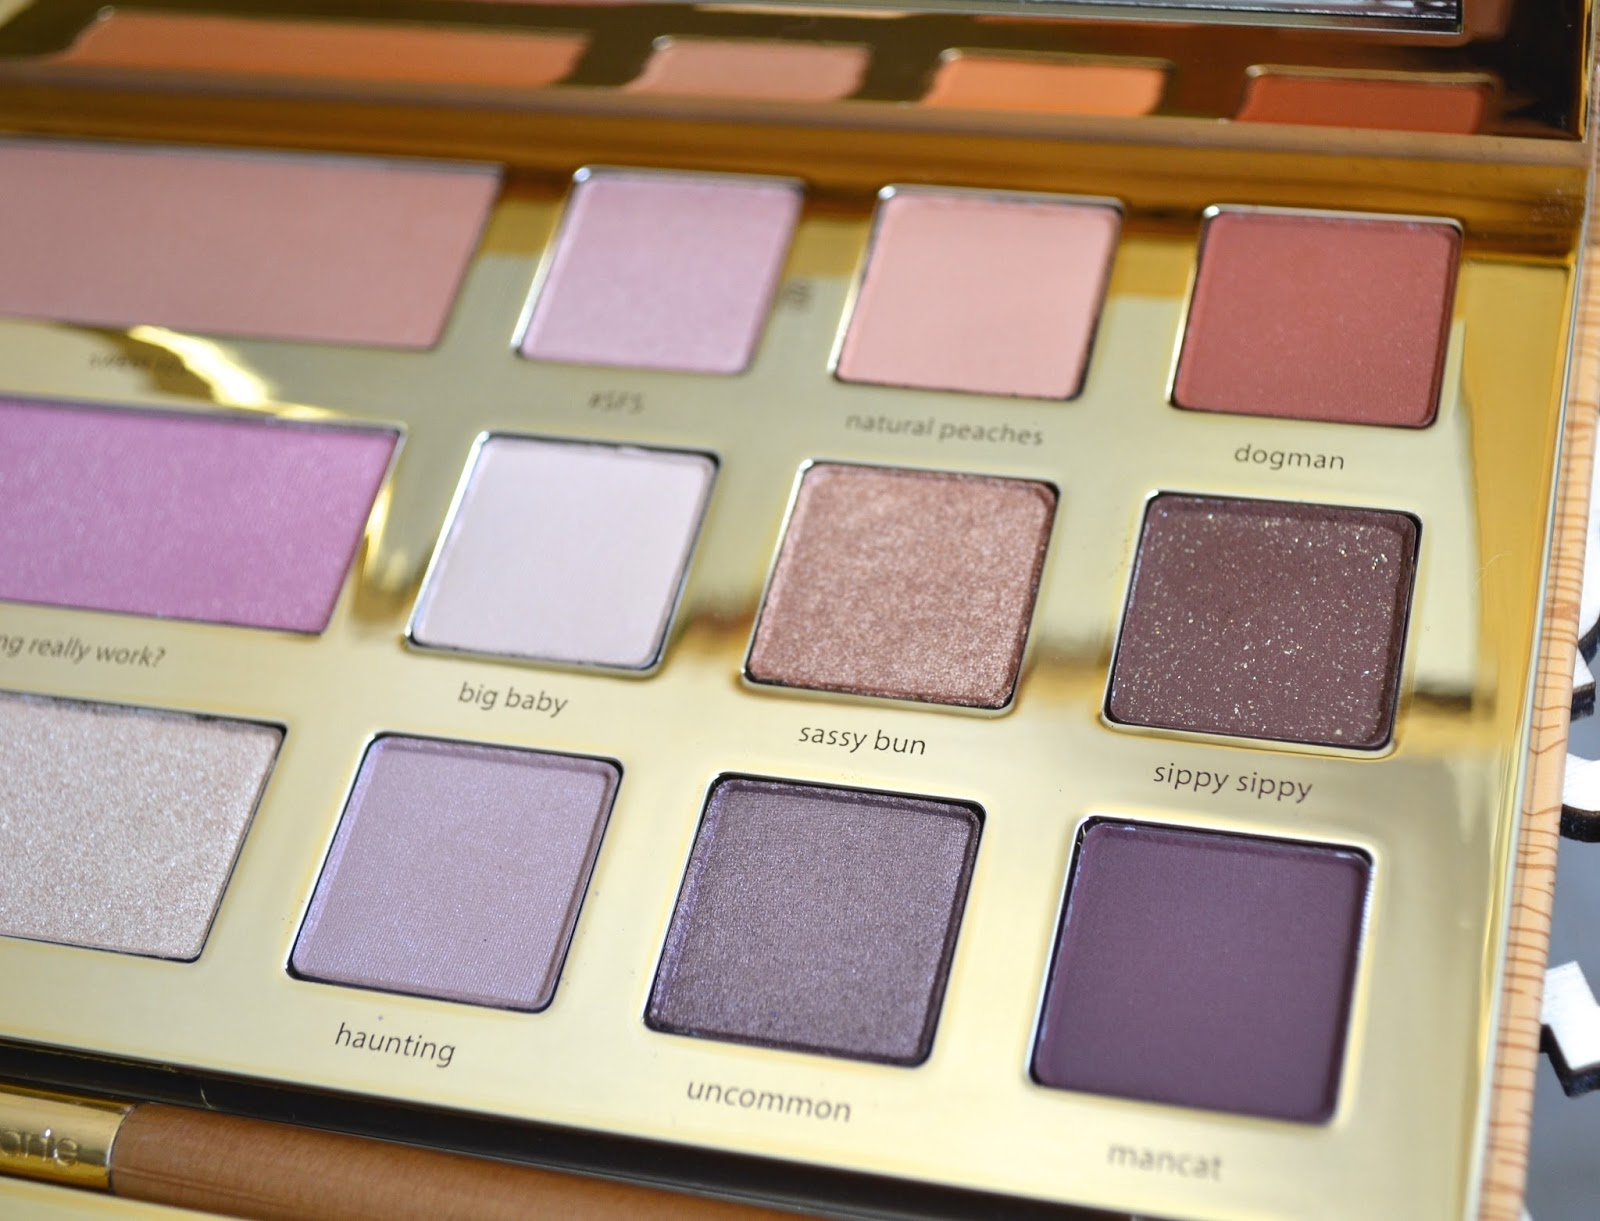 aquaheart tarte grav3yardgirl swamp queen eye cheek palette swatches and review. Black Bedroom Furniture Sets. Home Design Ideas